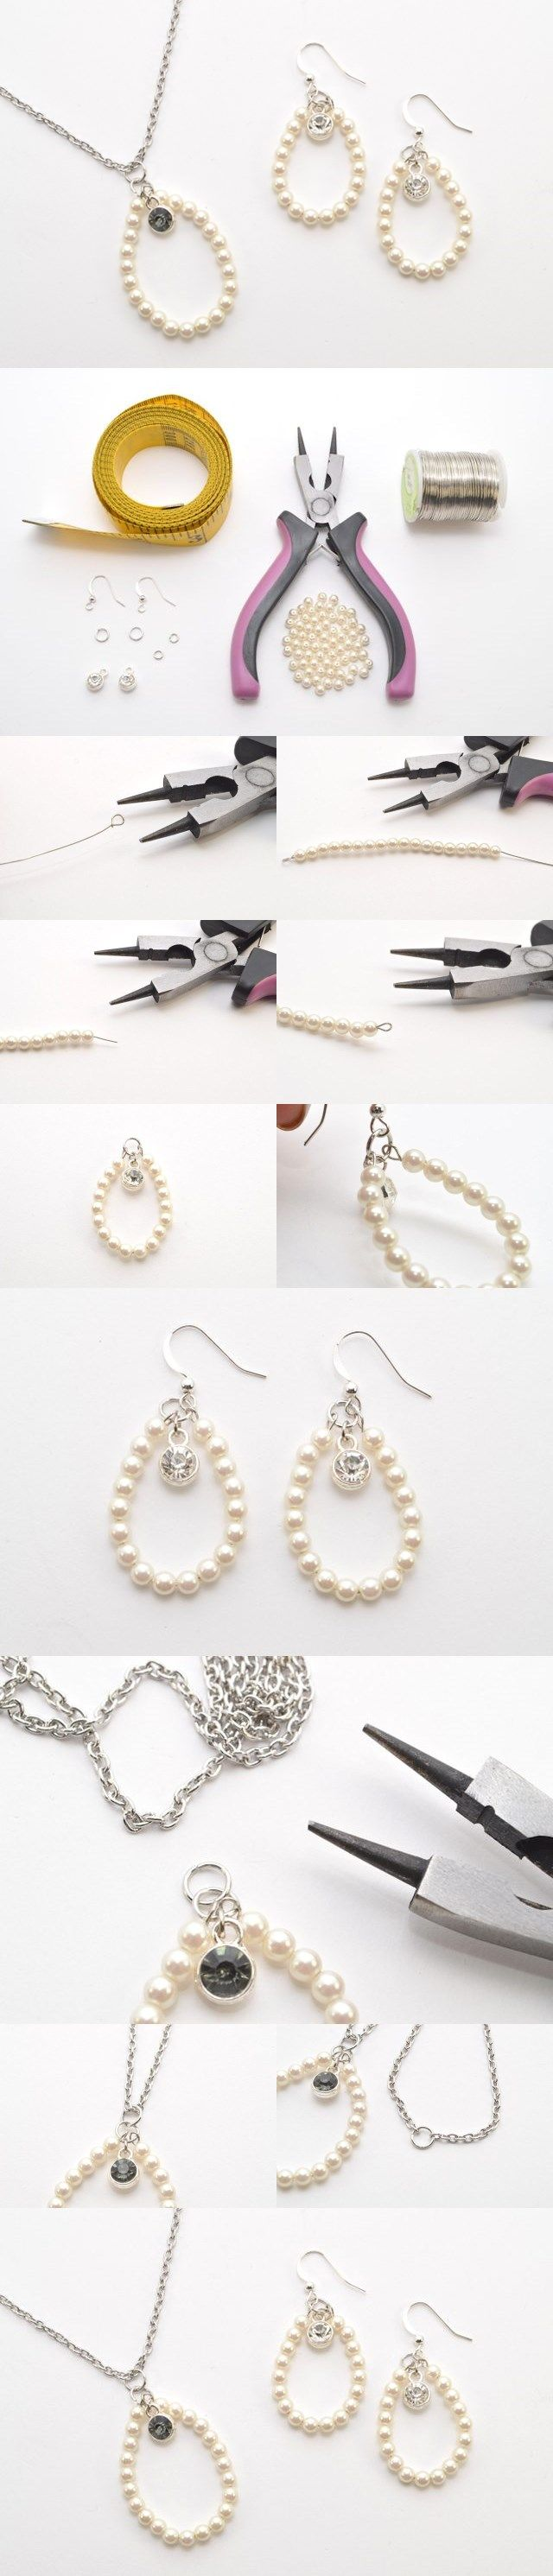 DIY Jewelry Set – Elegant Pearl Earrings and Necklace